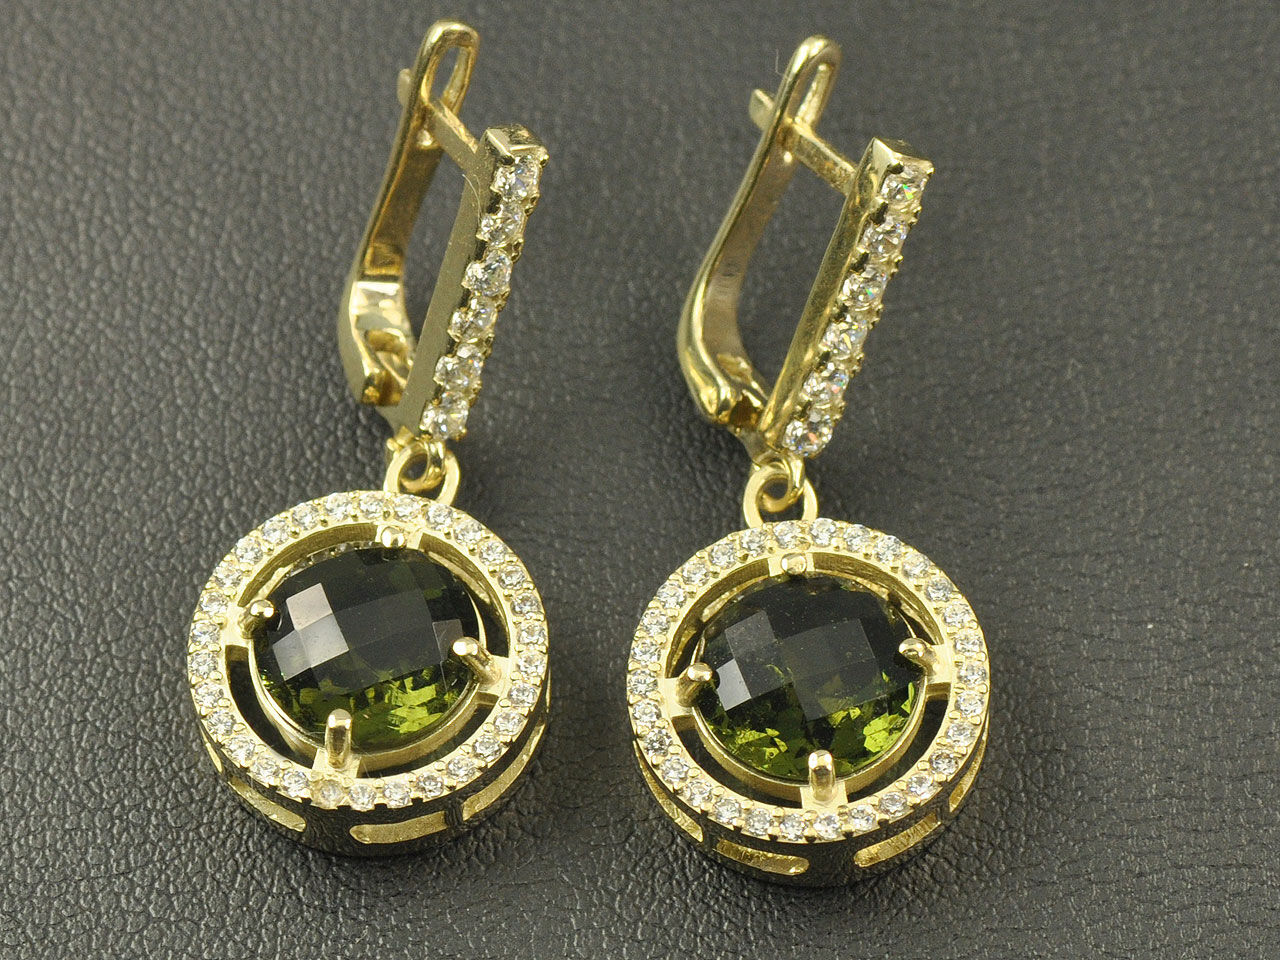 Moldavite earrings pair gold 14K 9mm faceted round  AUVL008